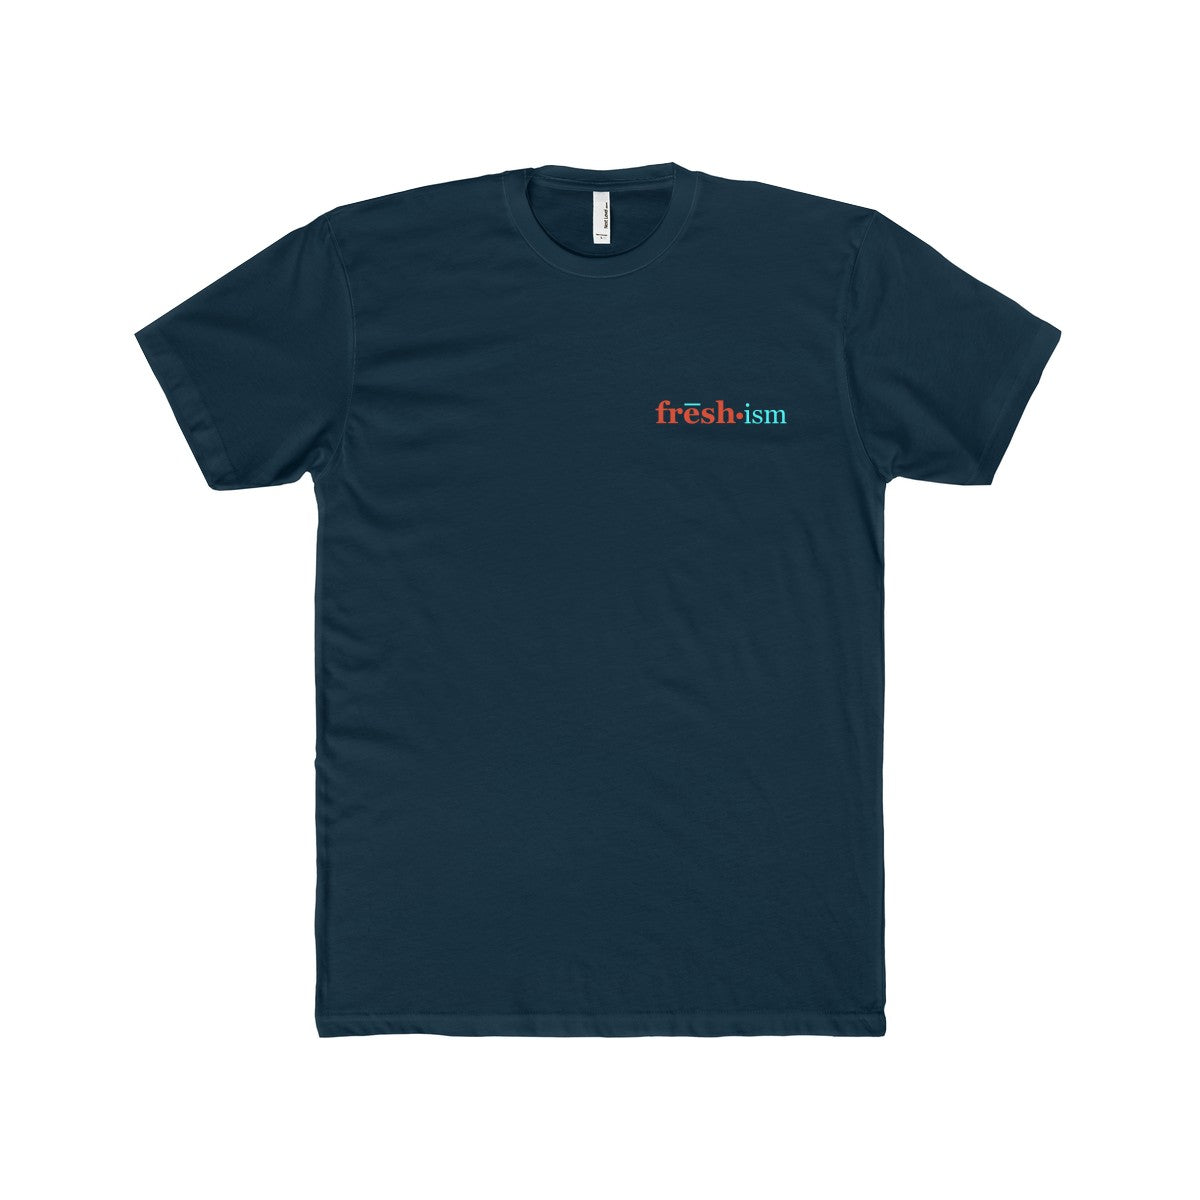 Freshism Men's Premium Fit Crew T-Shirt